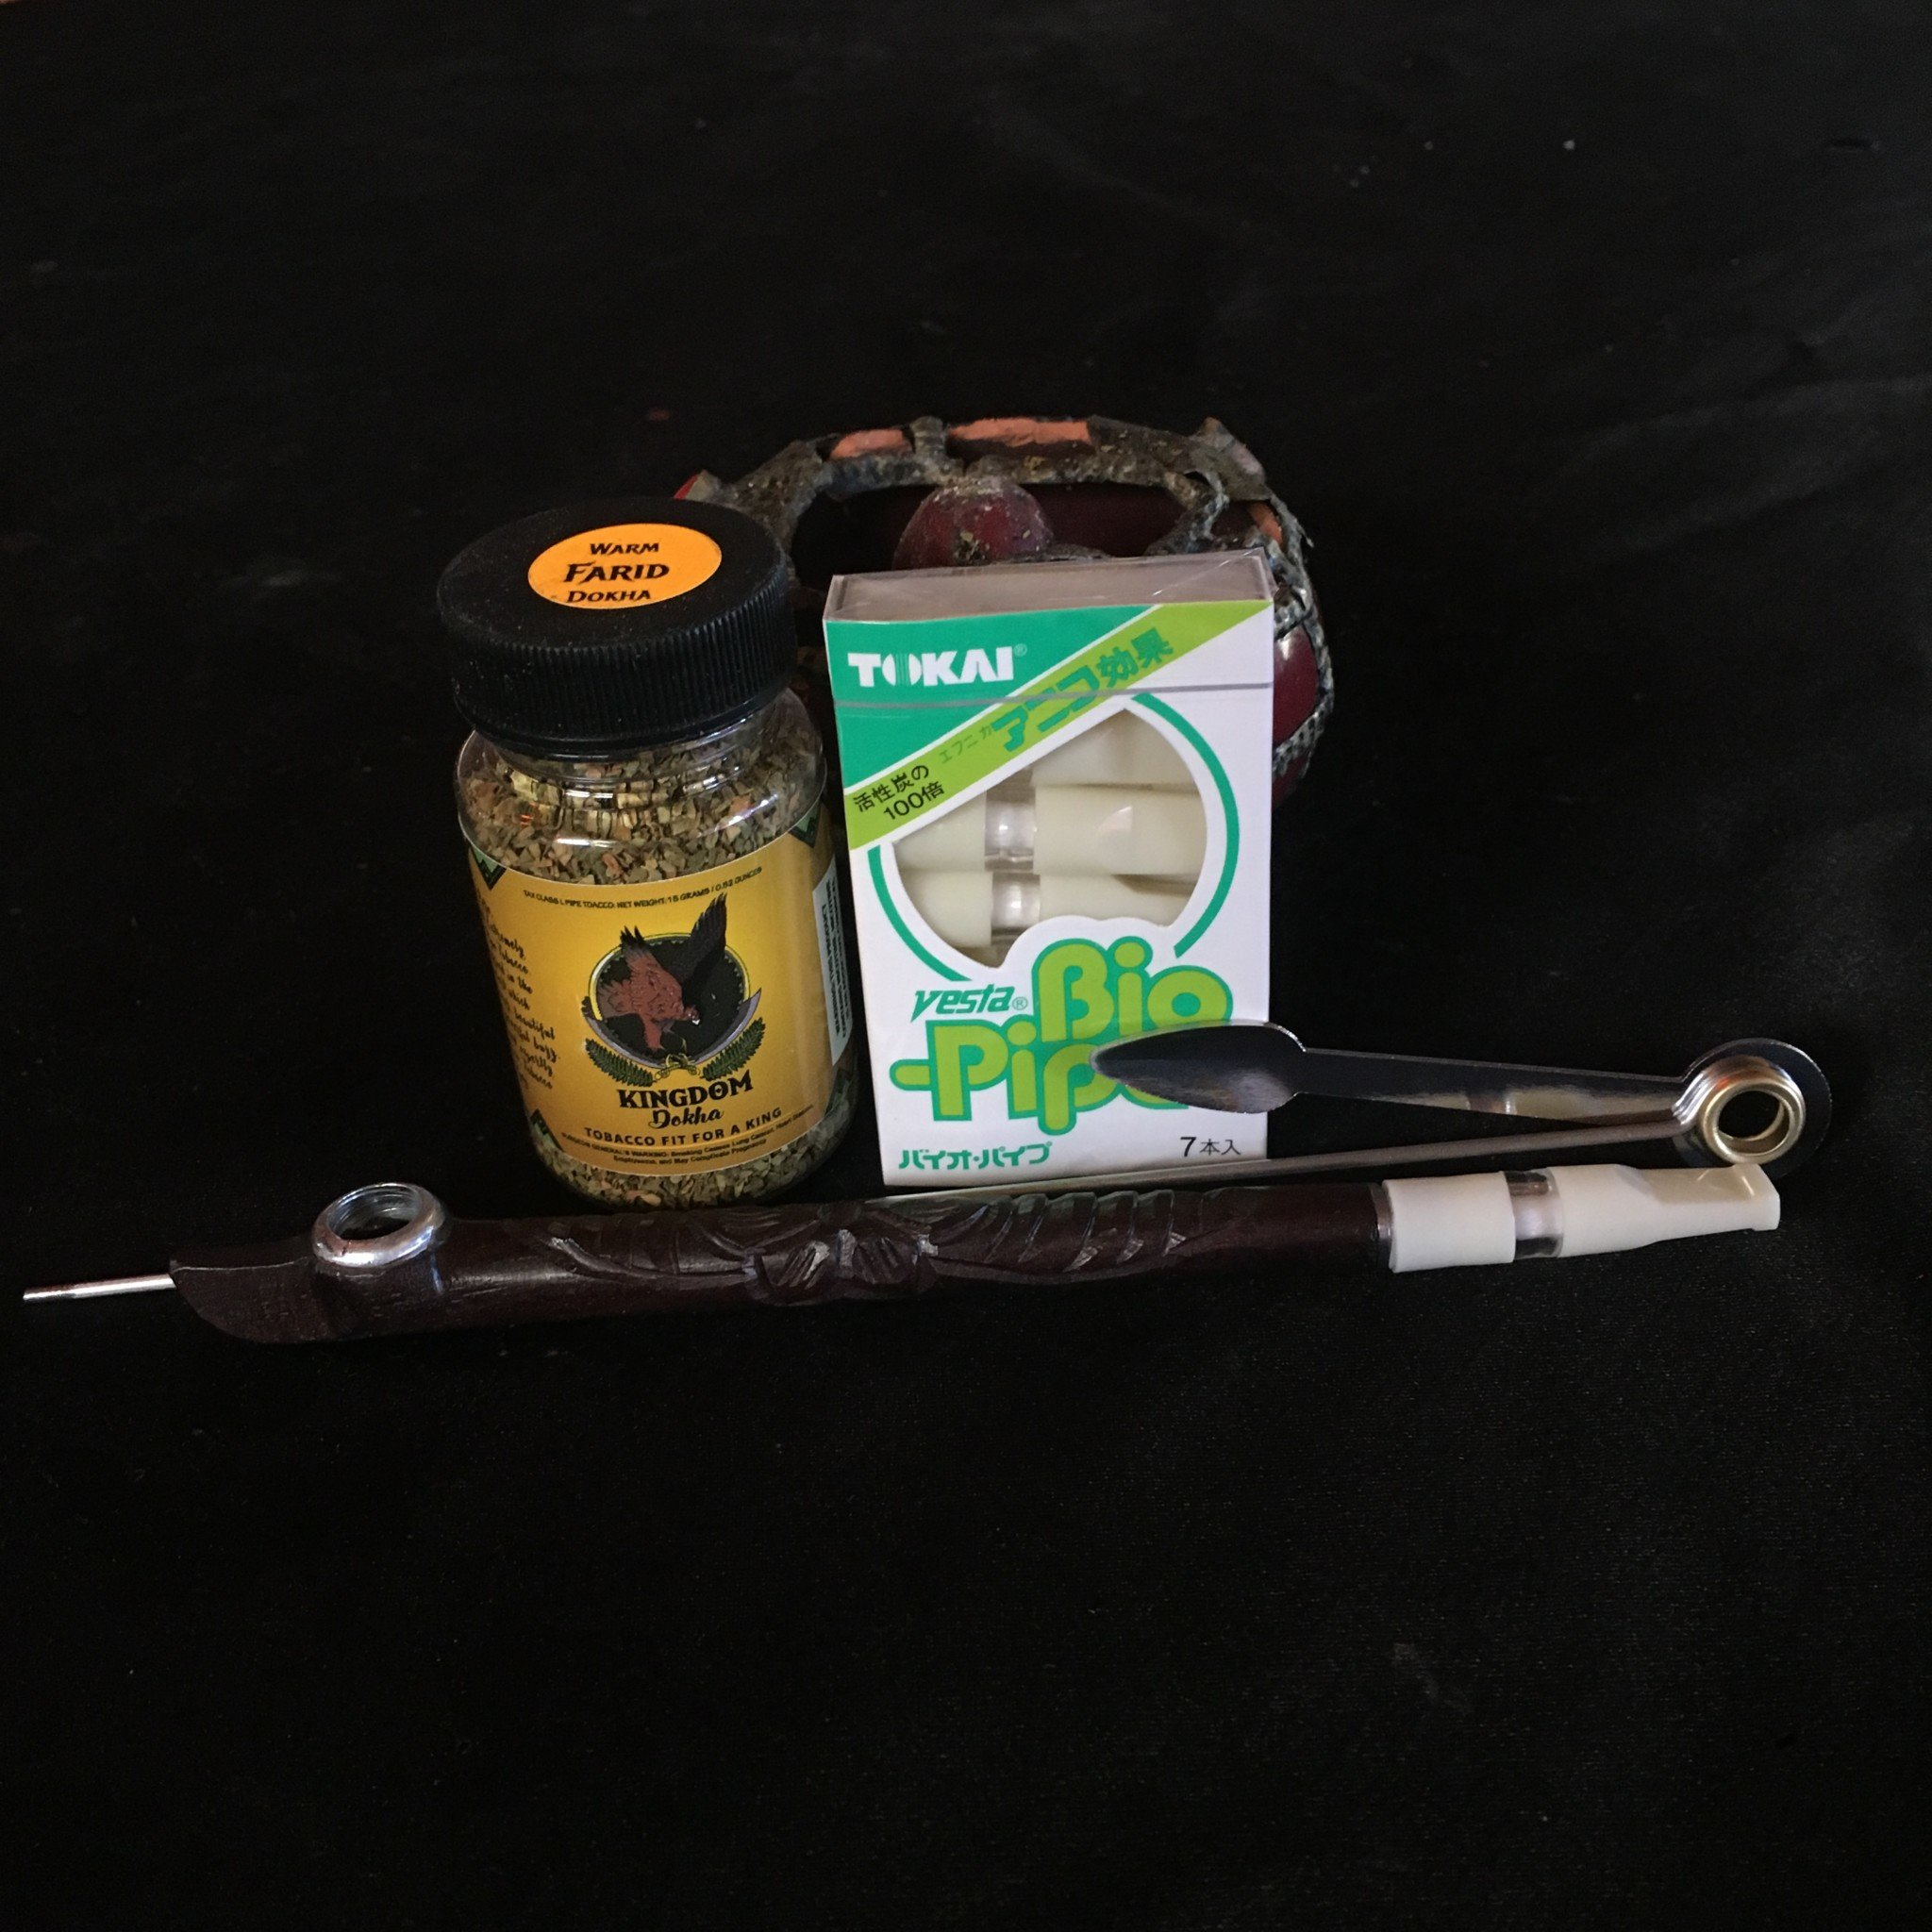 Starter Kit from Kingdom Dokha